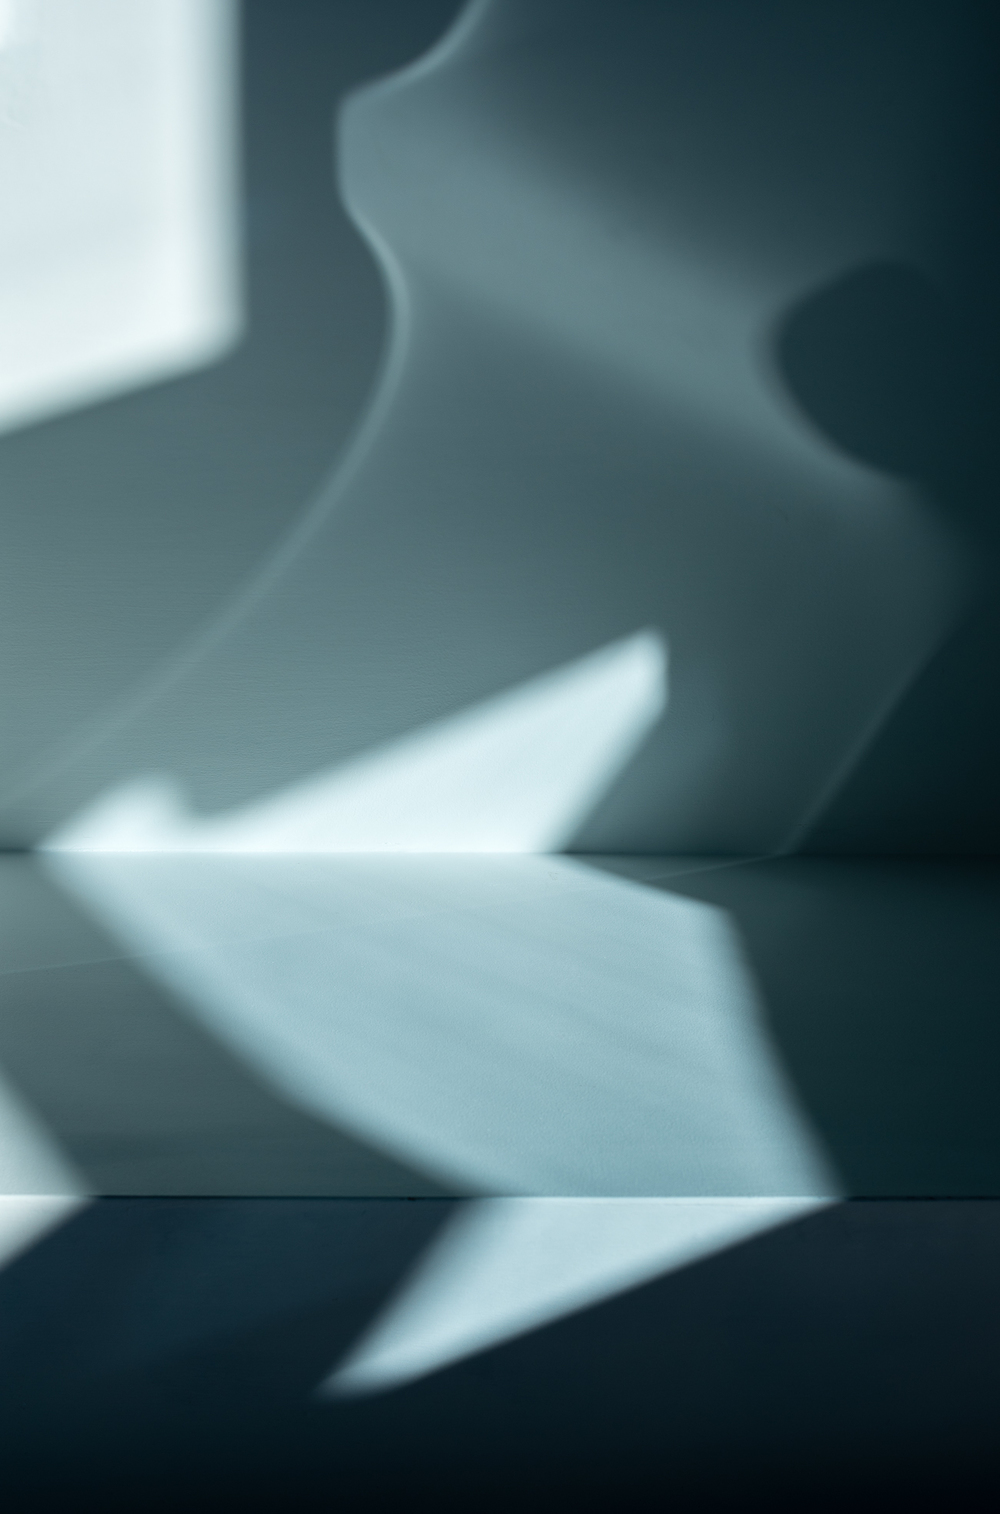 Reflections-and-shadows-(15-of-1).jpg